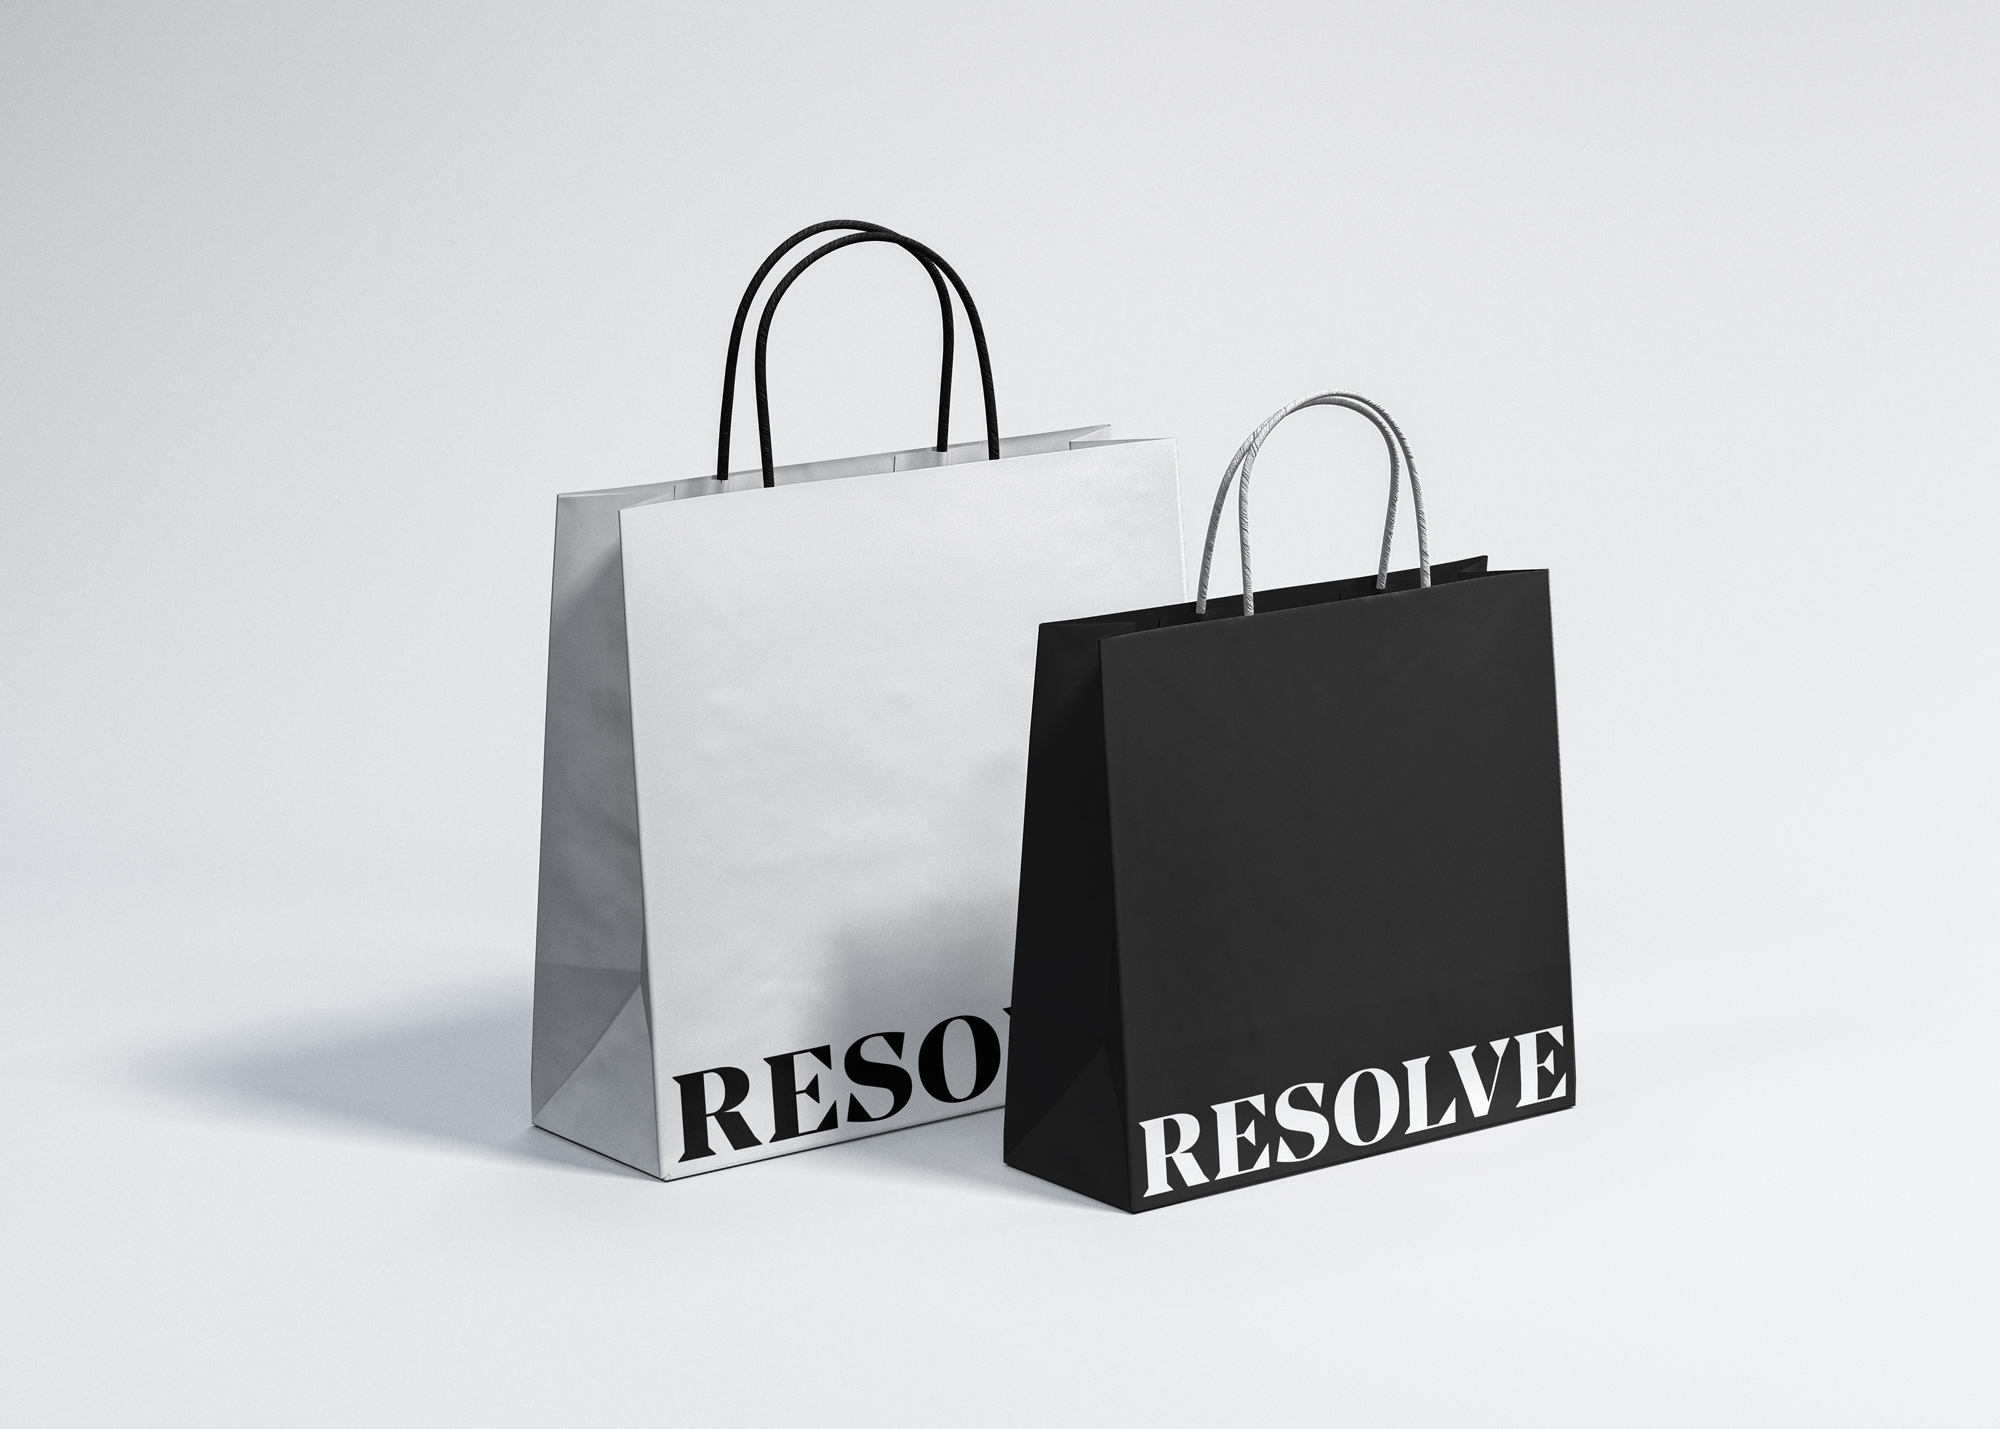 Resolve Clothing branded shopping bags